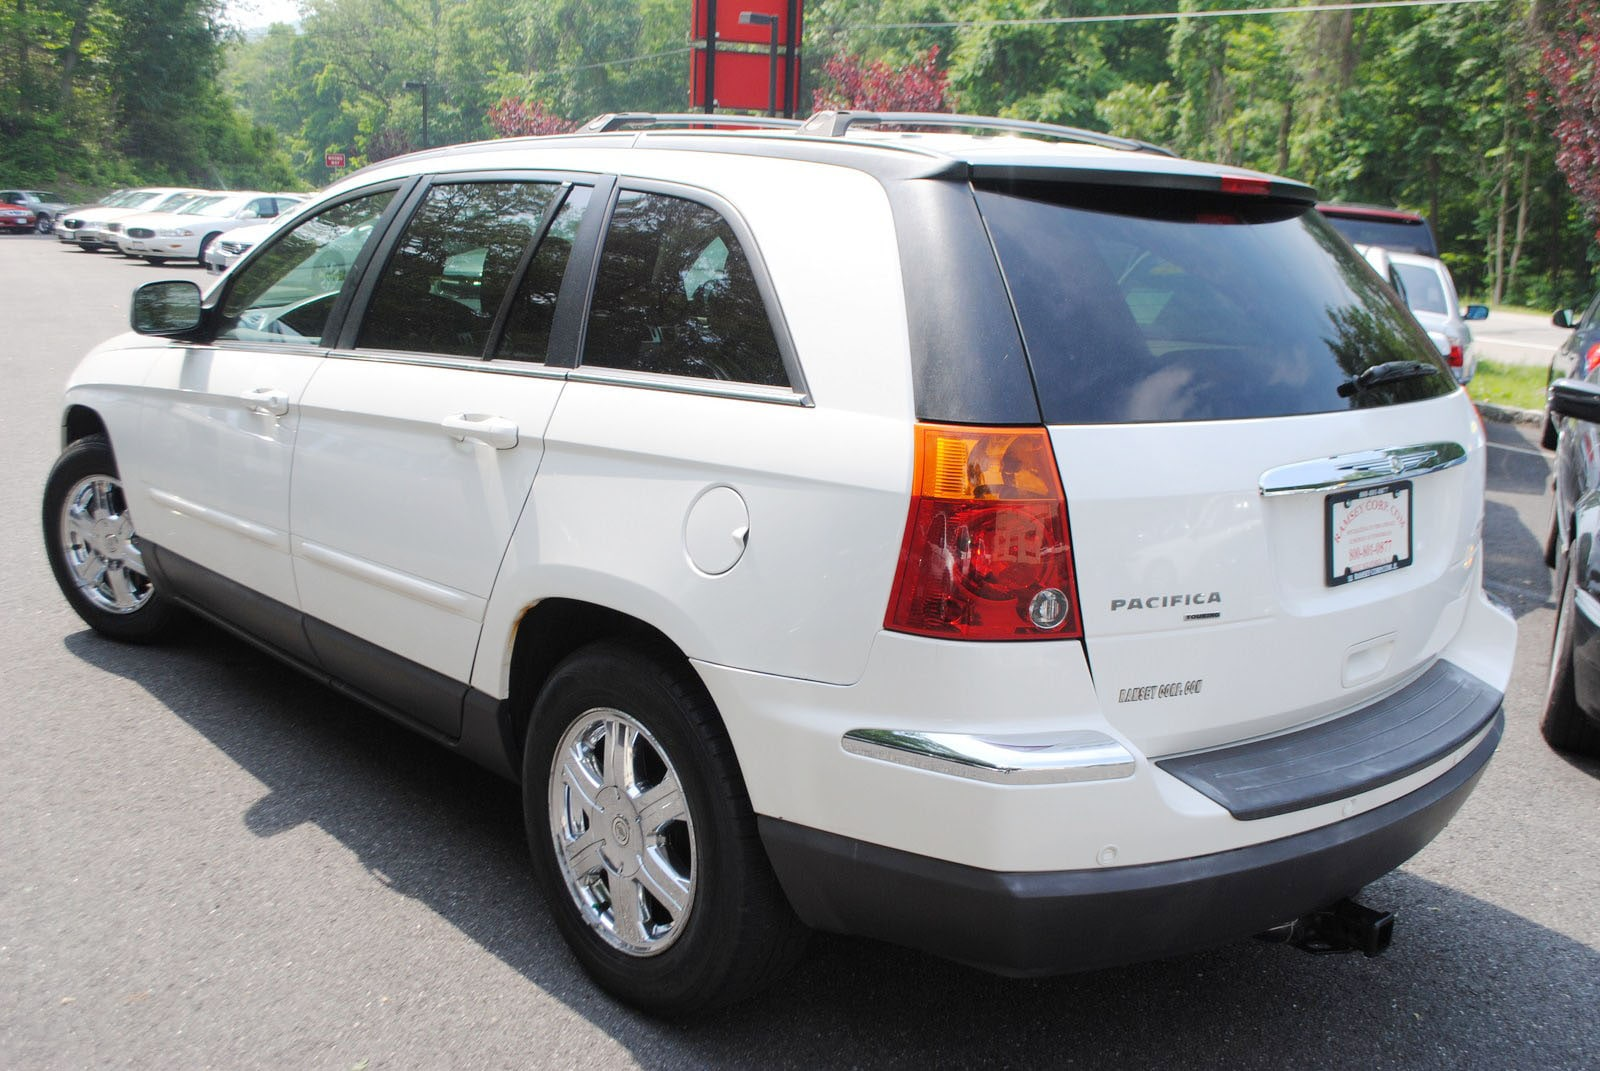 used 2006 chrysler pacifica for sale west milford nj. Black Bedroom Furniture Sets. Home Design Ideas